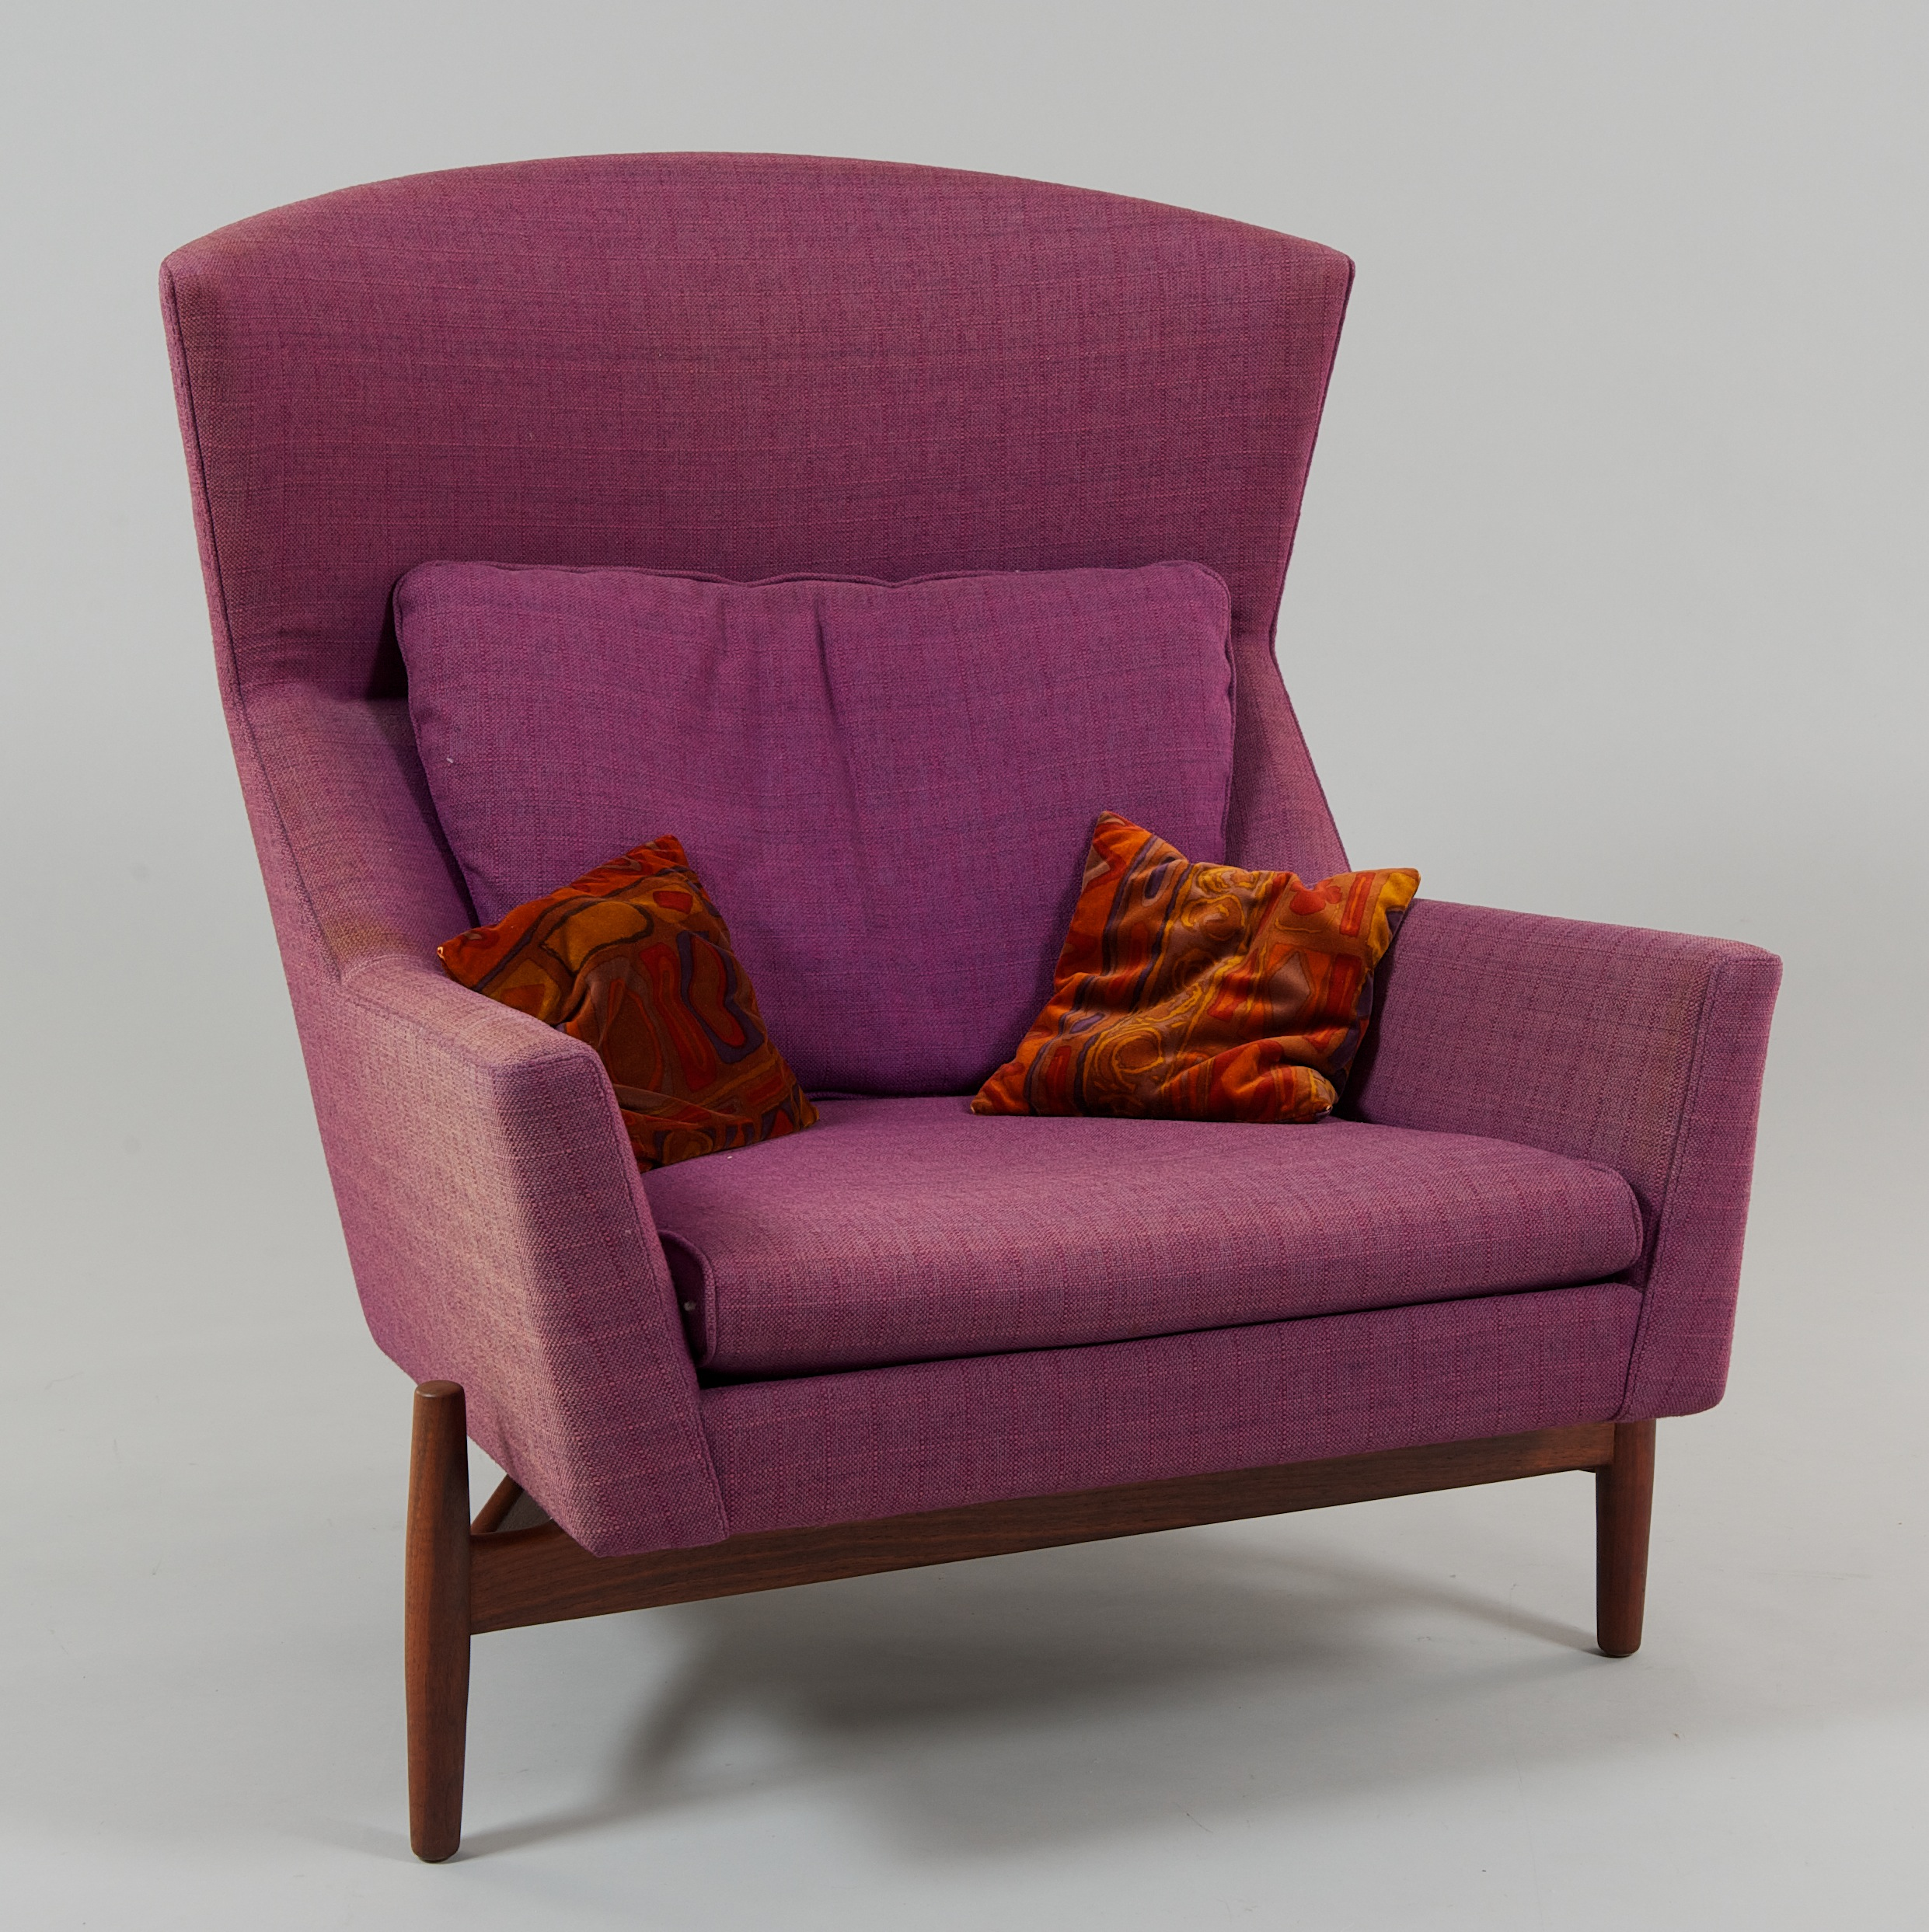 a jens risom design lounge chair 09 25 10 sold 891 25